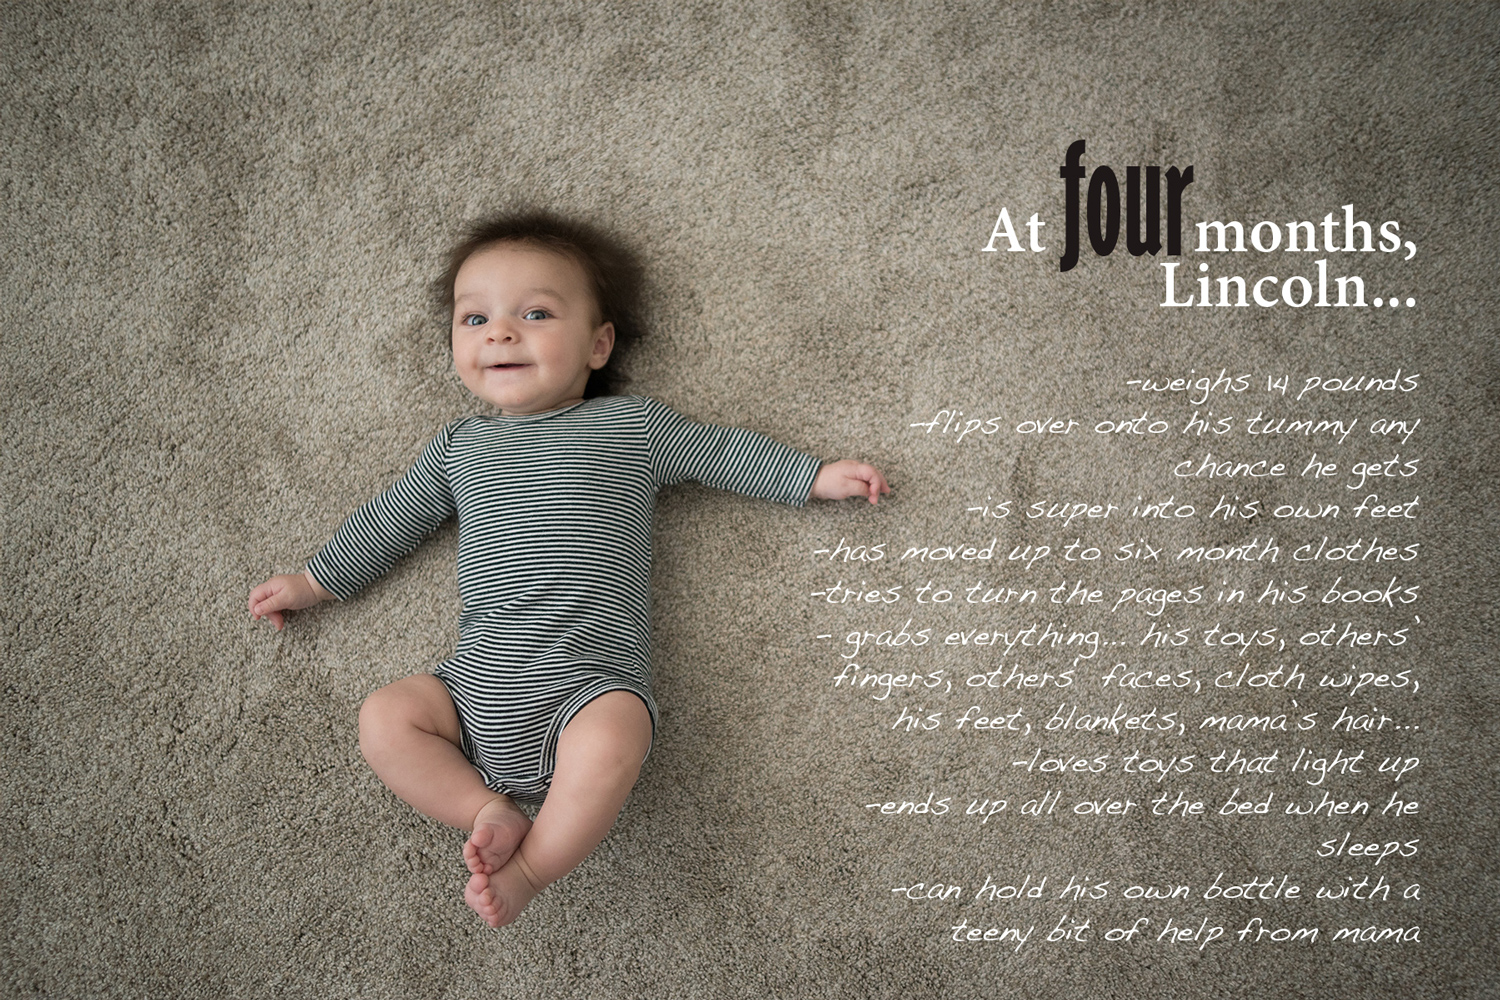 Baby Book image with text overlay, 4 month baby